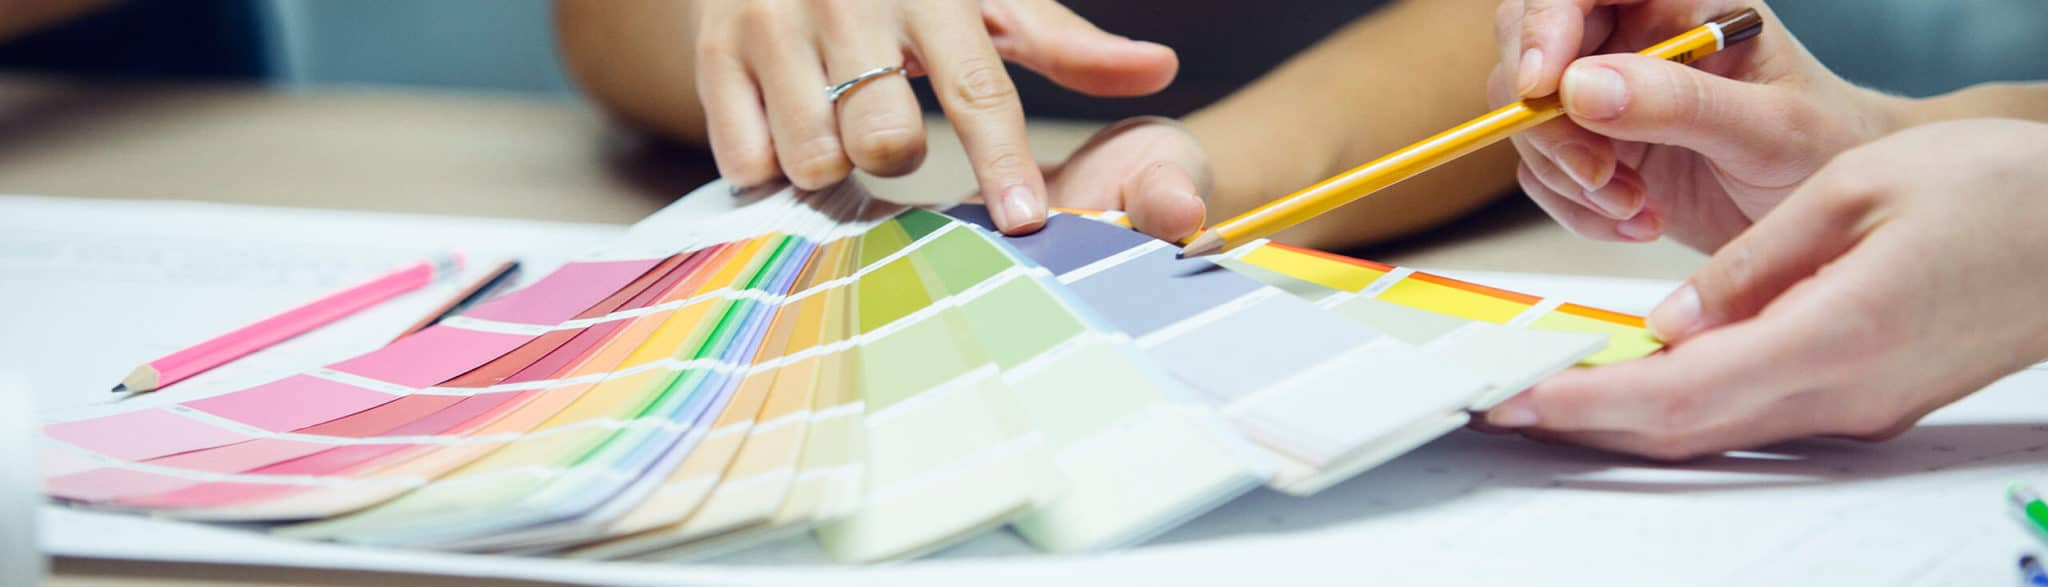 Eligiendo color - profesionales y contract